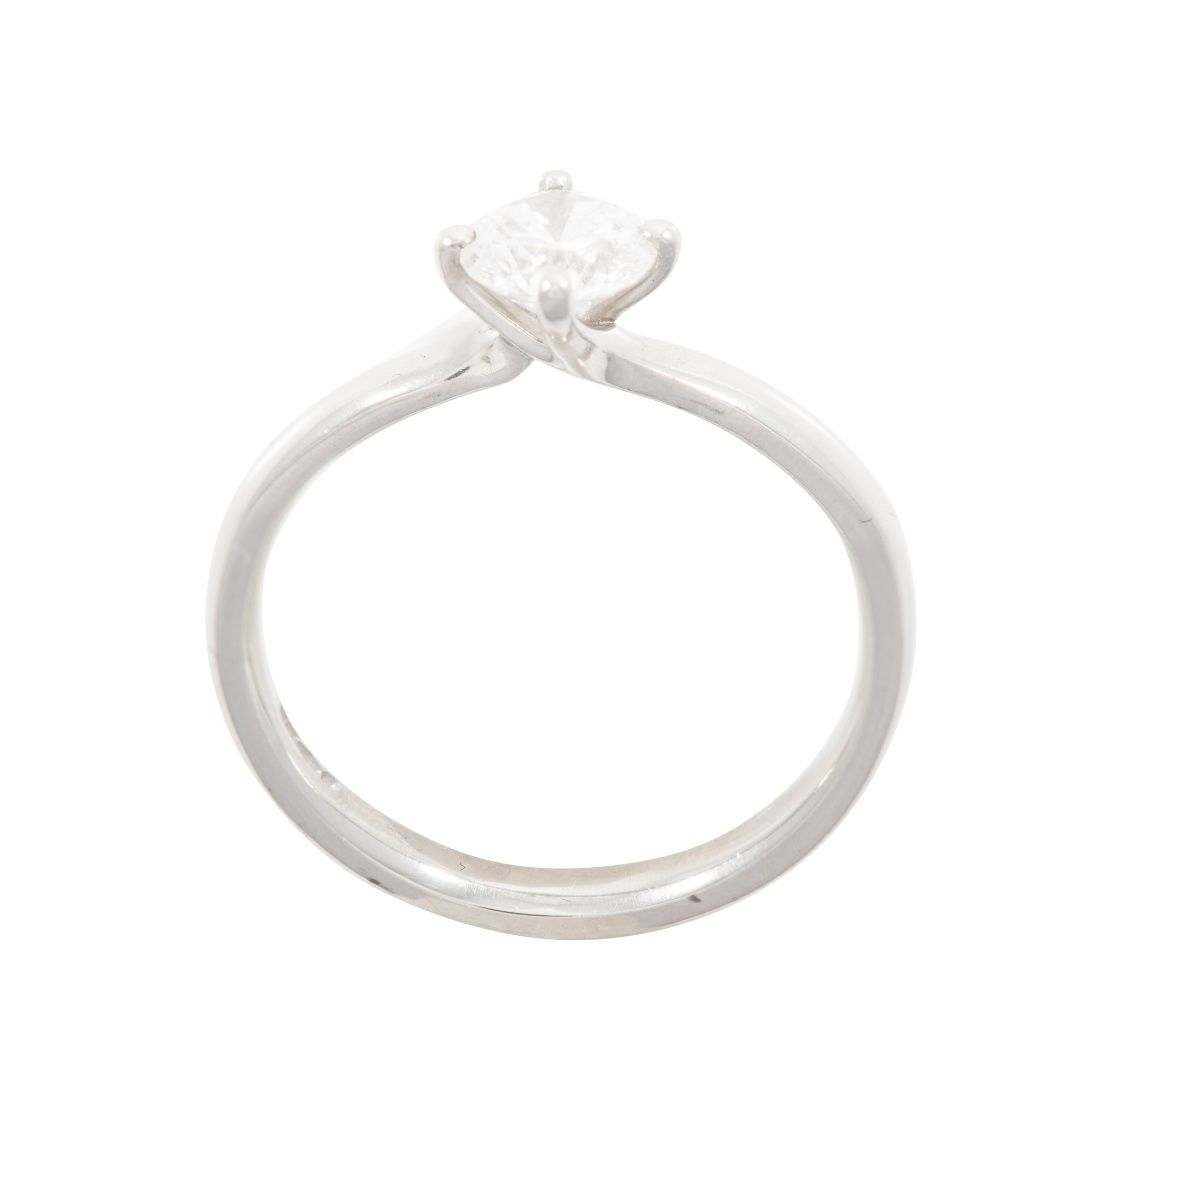 Diamond Solitaire Ring (M) - WLXK96